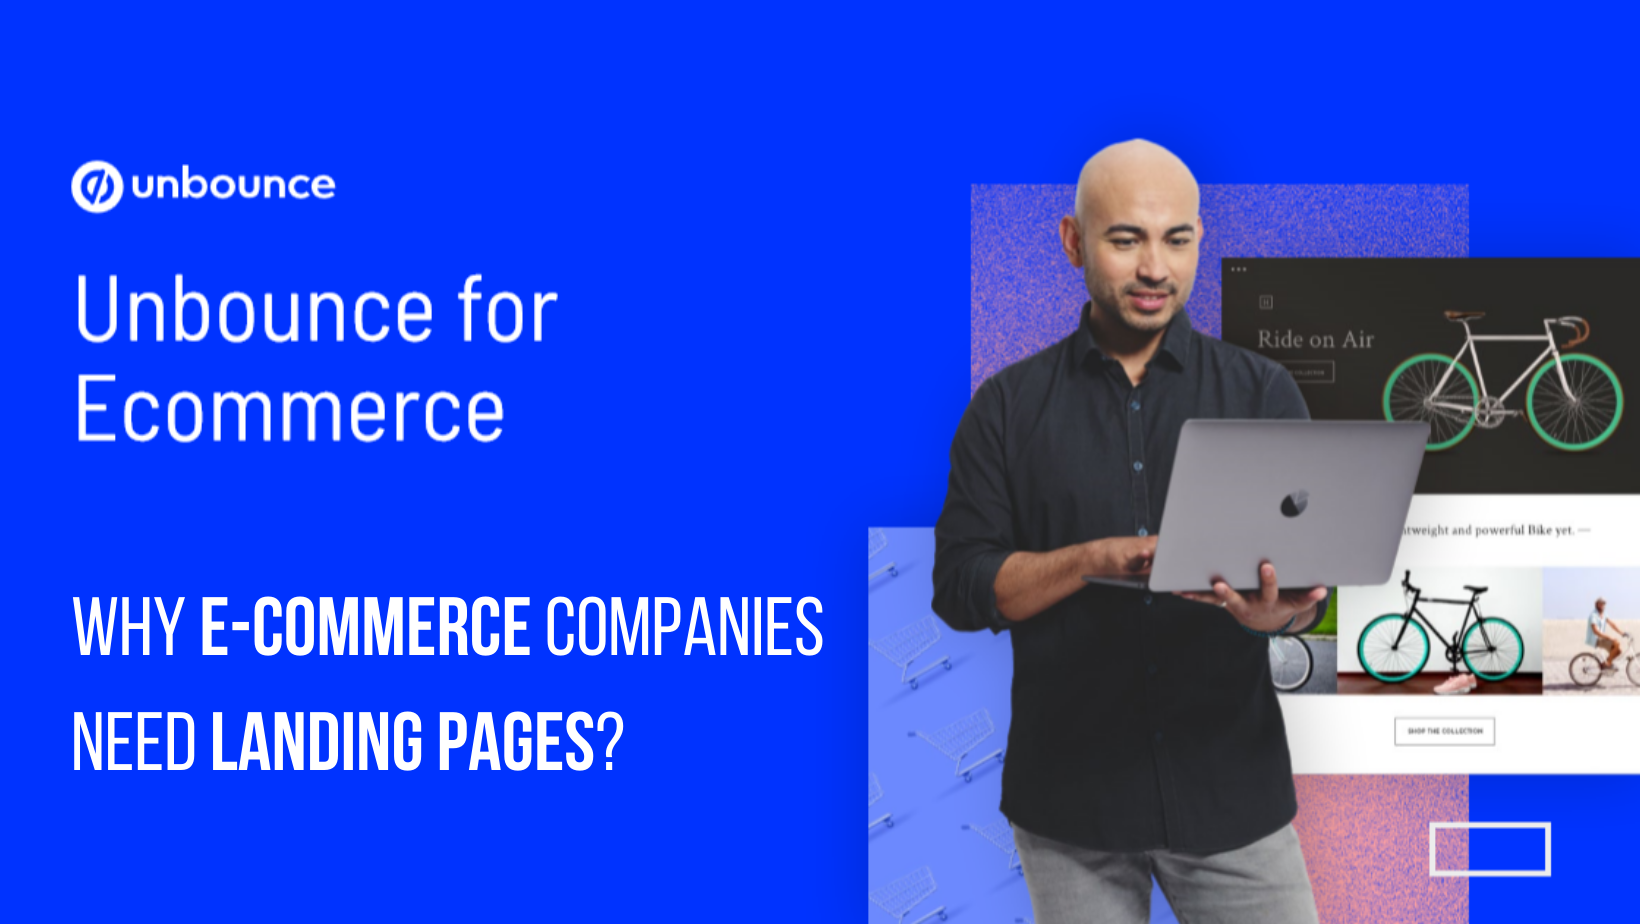 Why Ecommerce Companies need Landing Pages?